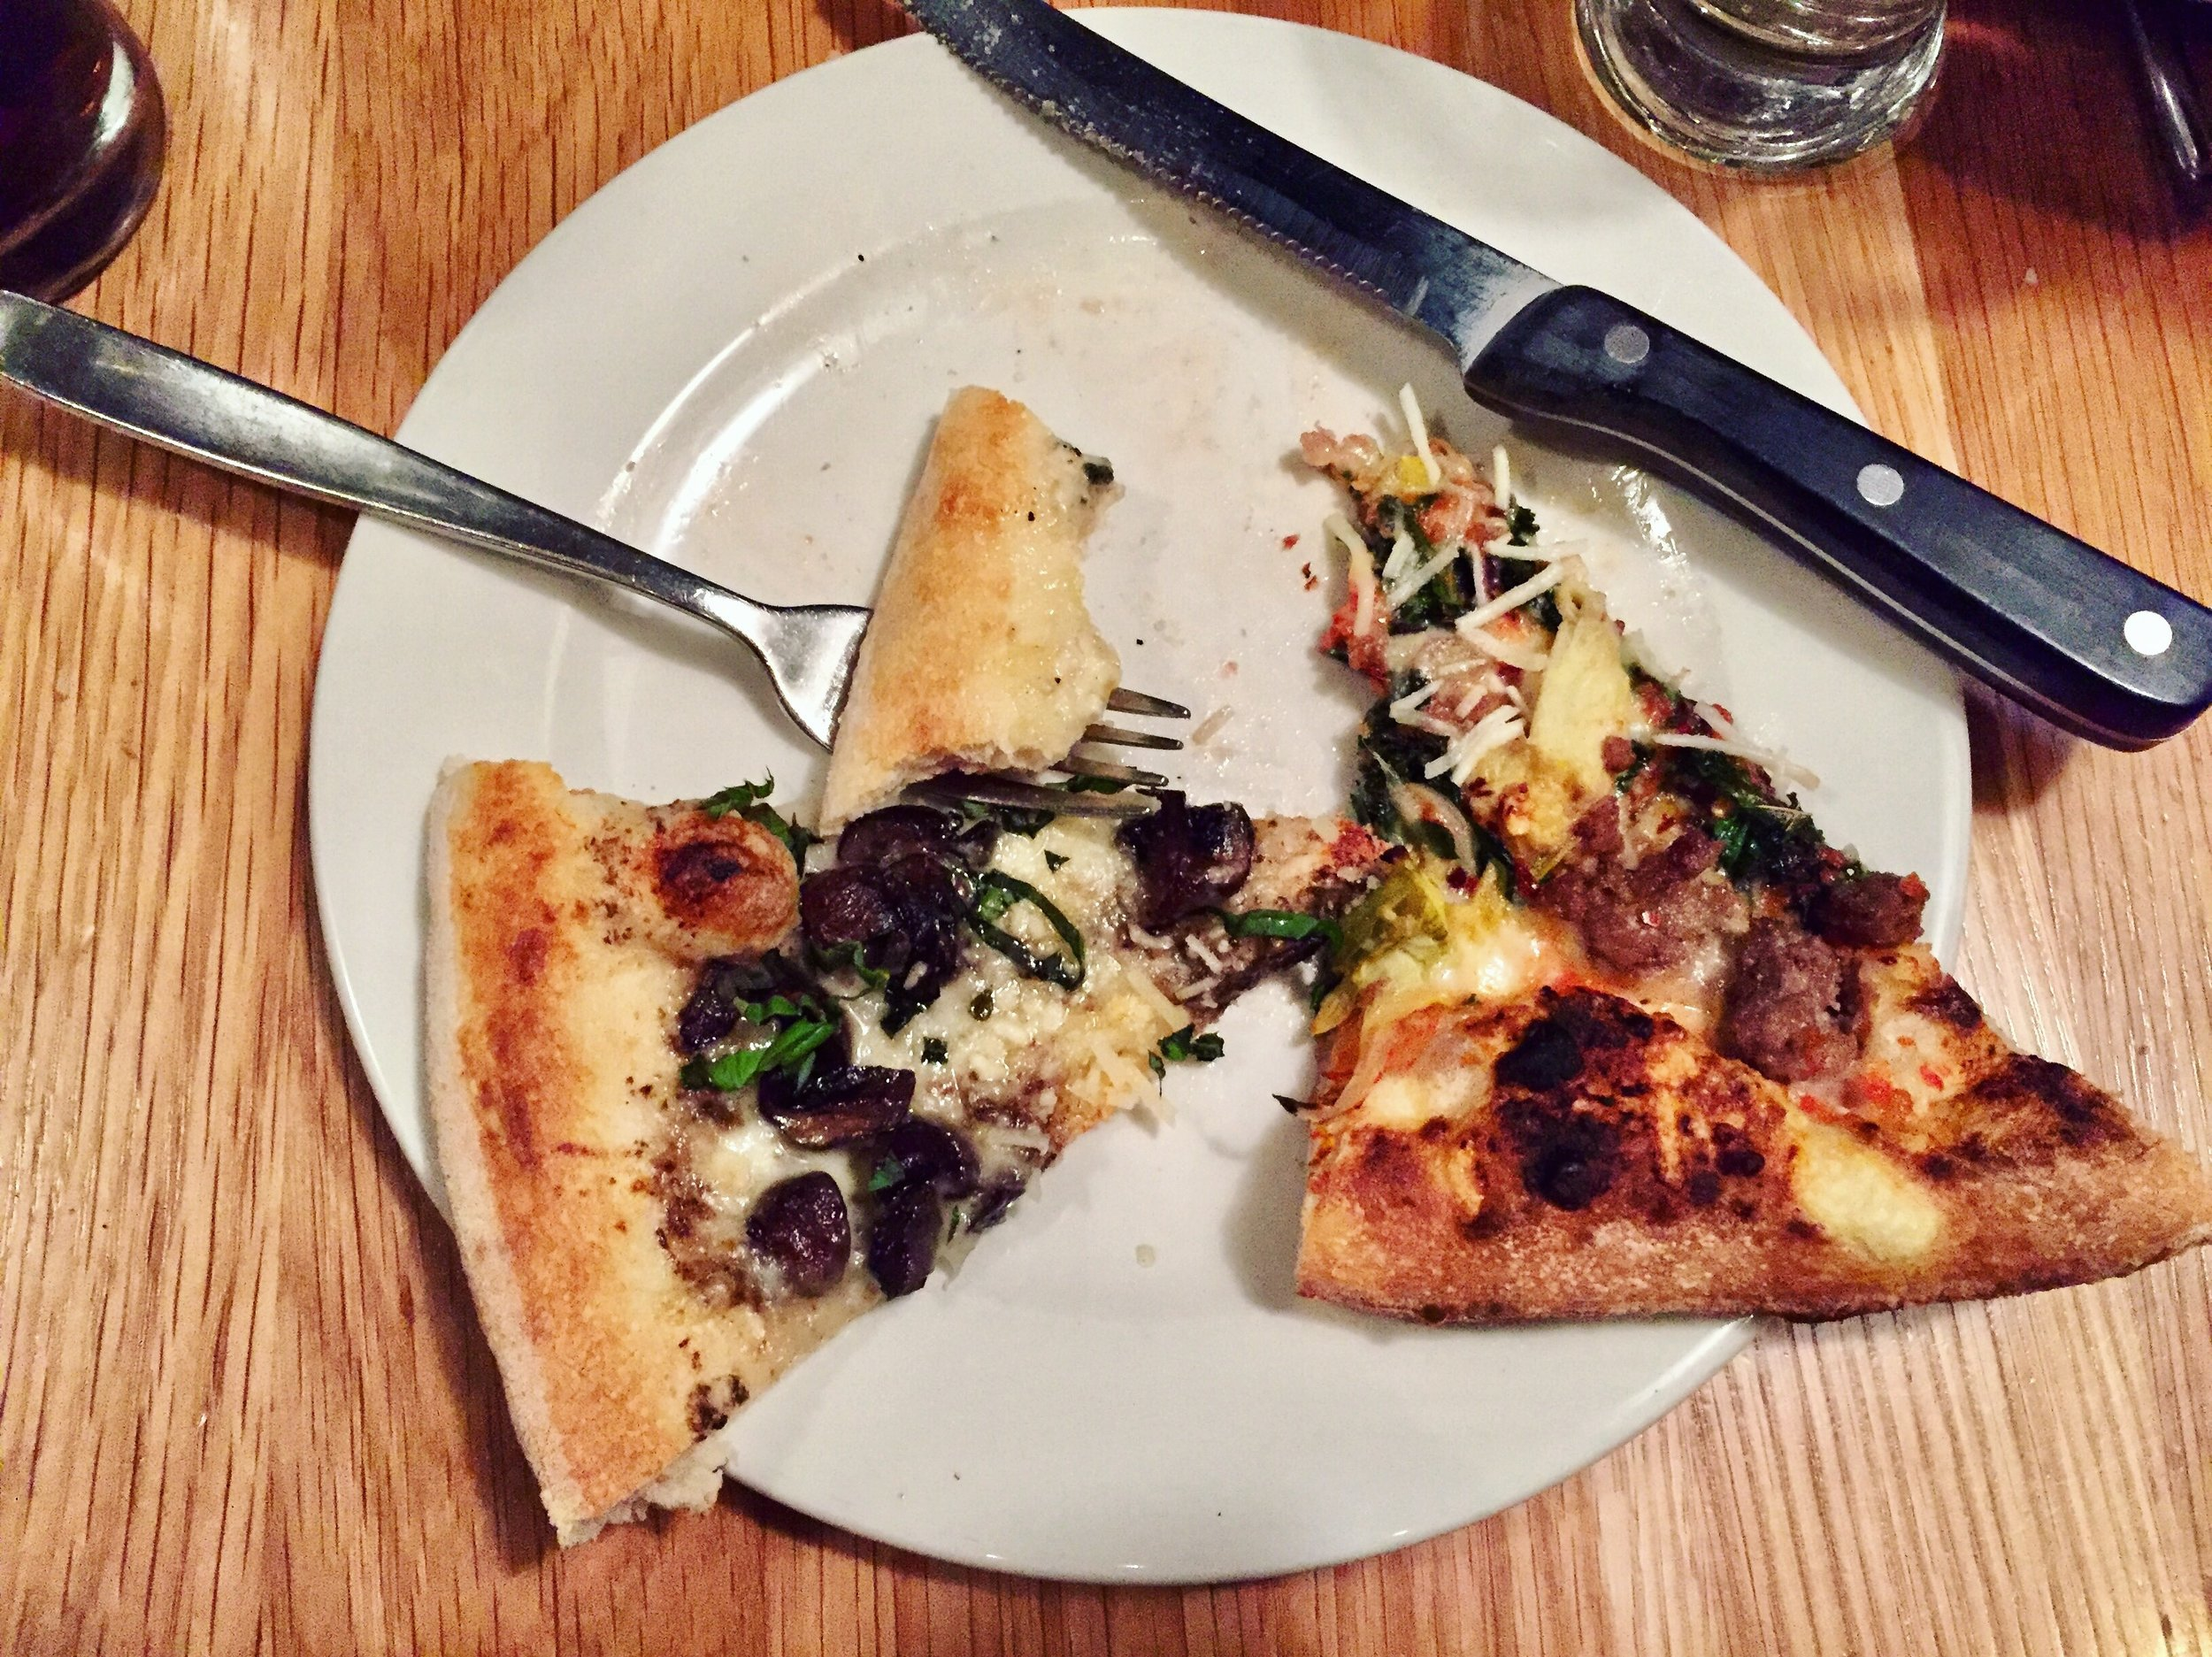 9-the-most-amazing-pizza-at-double-zero_30708347296_o.jpg